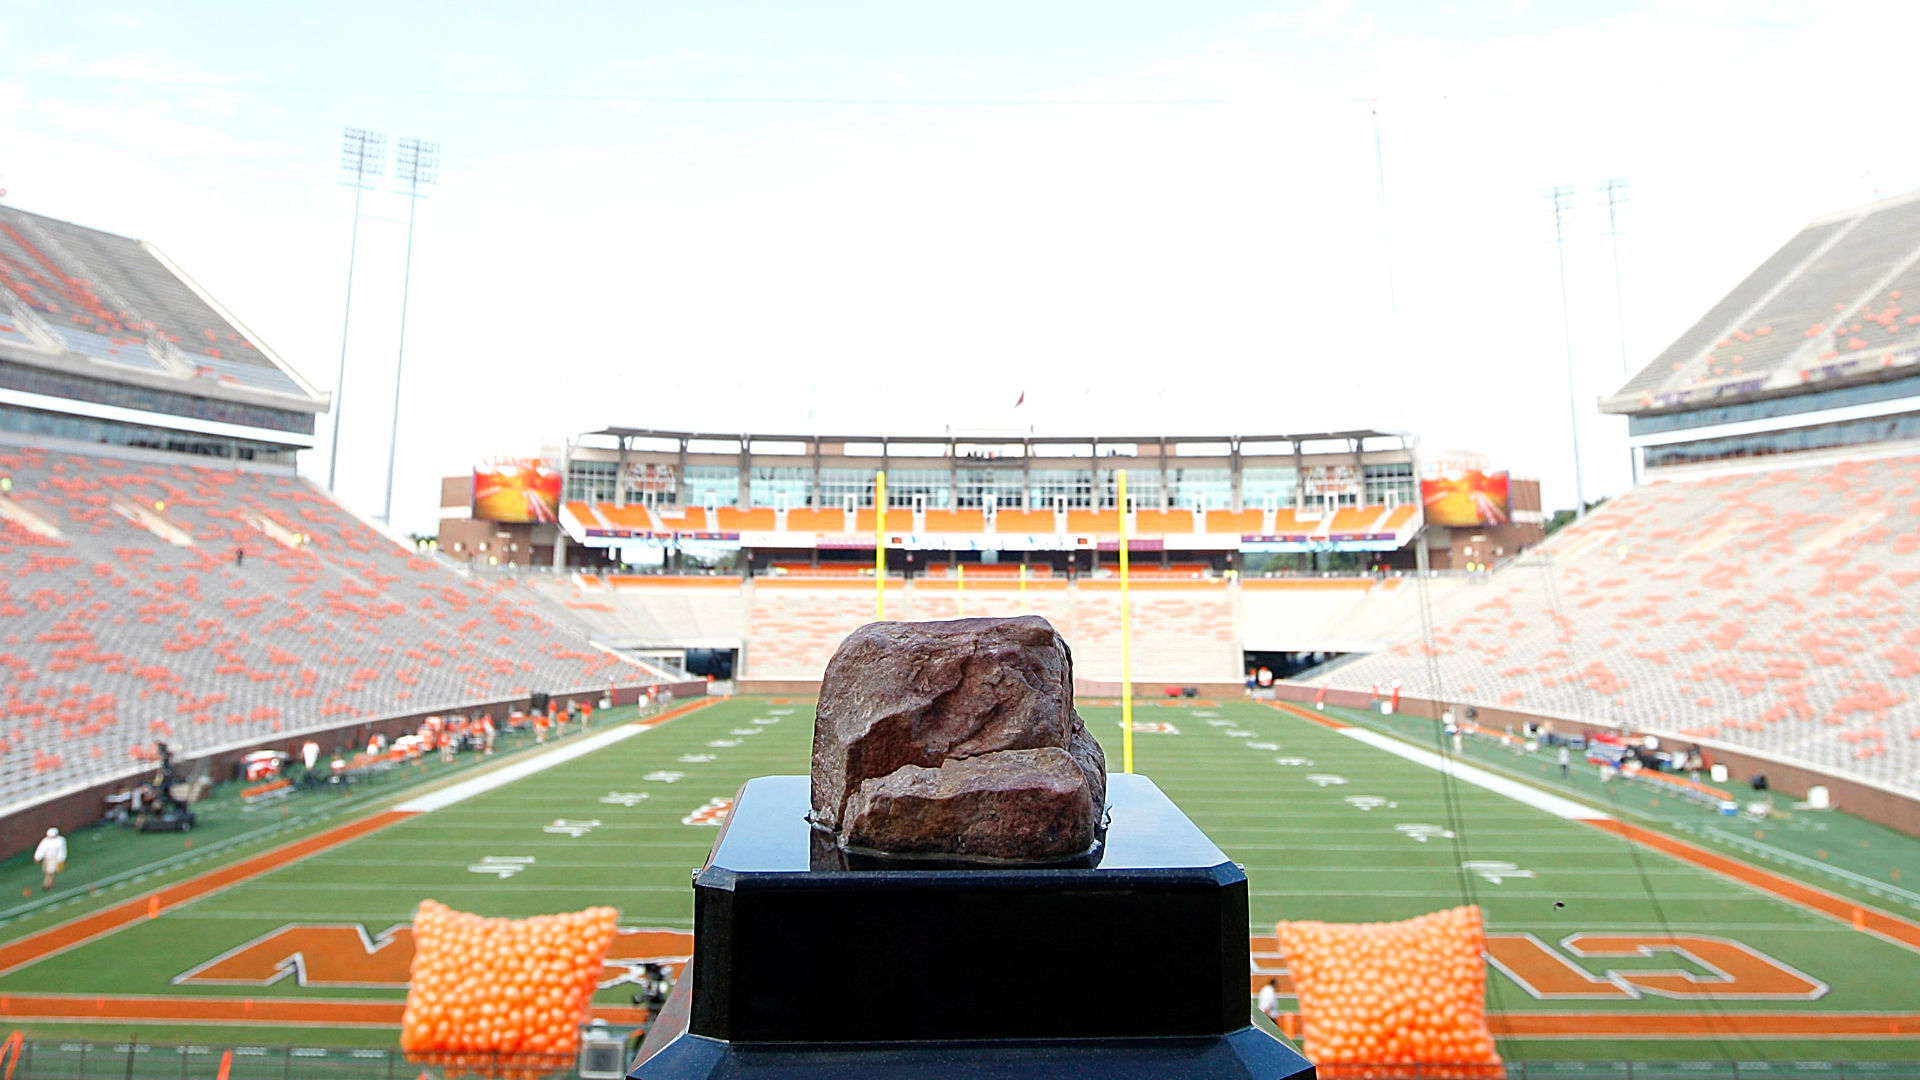 Case Protecting Clemson S Iconic Howard S Rock Vanadlized Sporting News Michael douglas stars with annette bening in 1995's the american president, in which he plays a clintonesque commander in chief. case protecting clemson s iconic howard